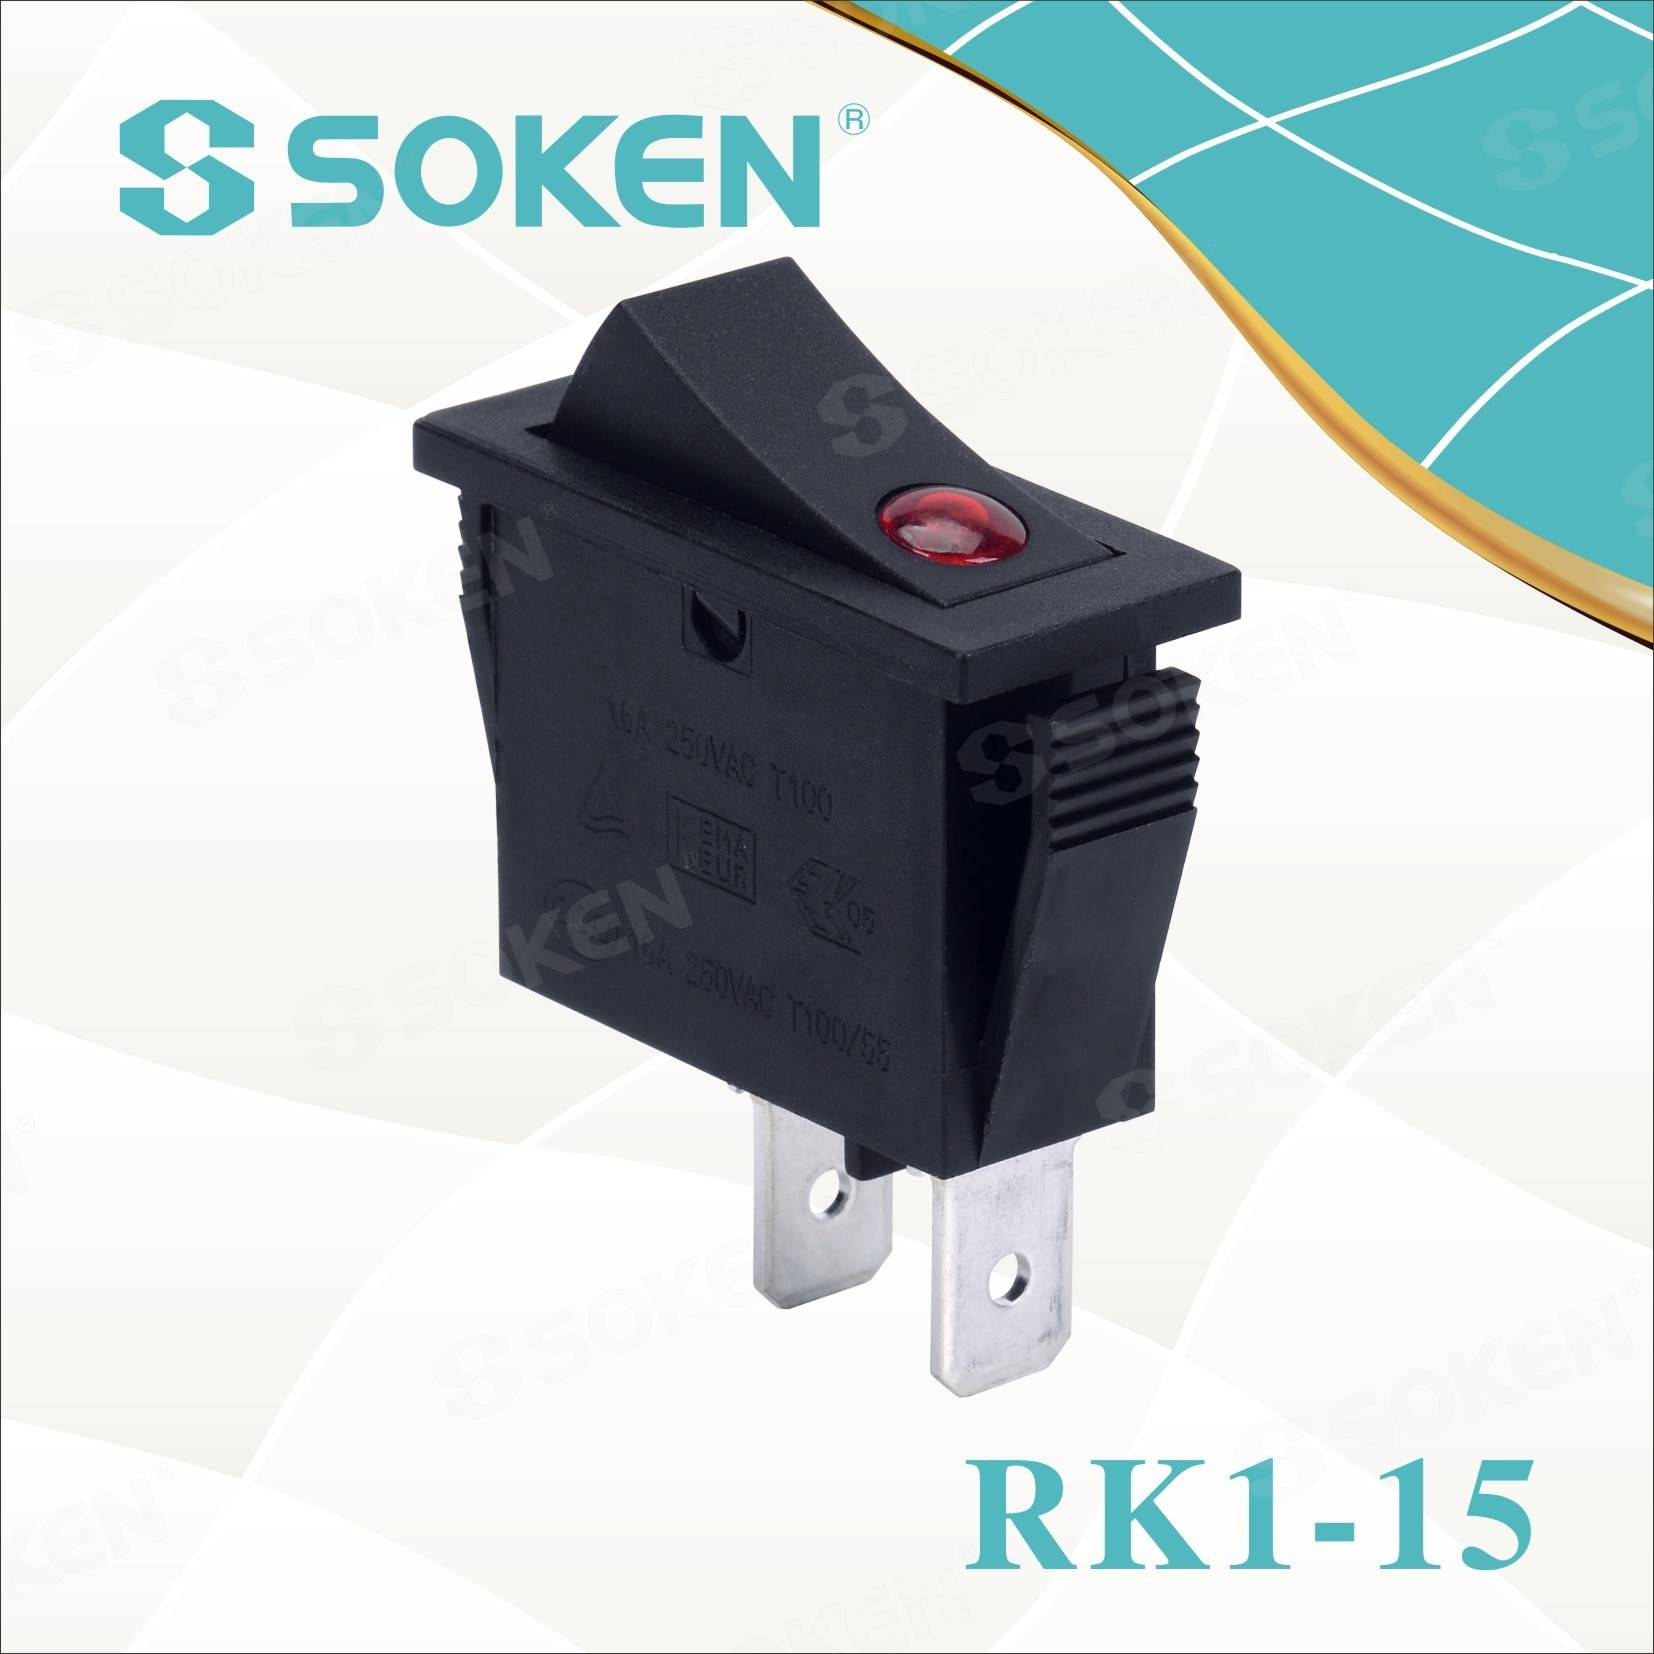 Soken Rk1-15 1X1n Lens på off Rocker Switch